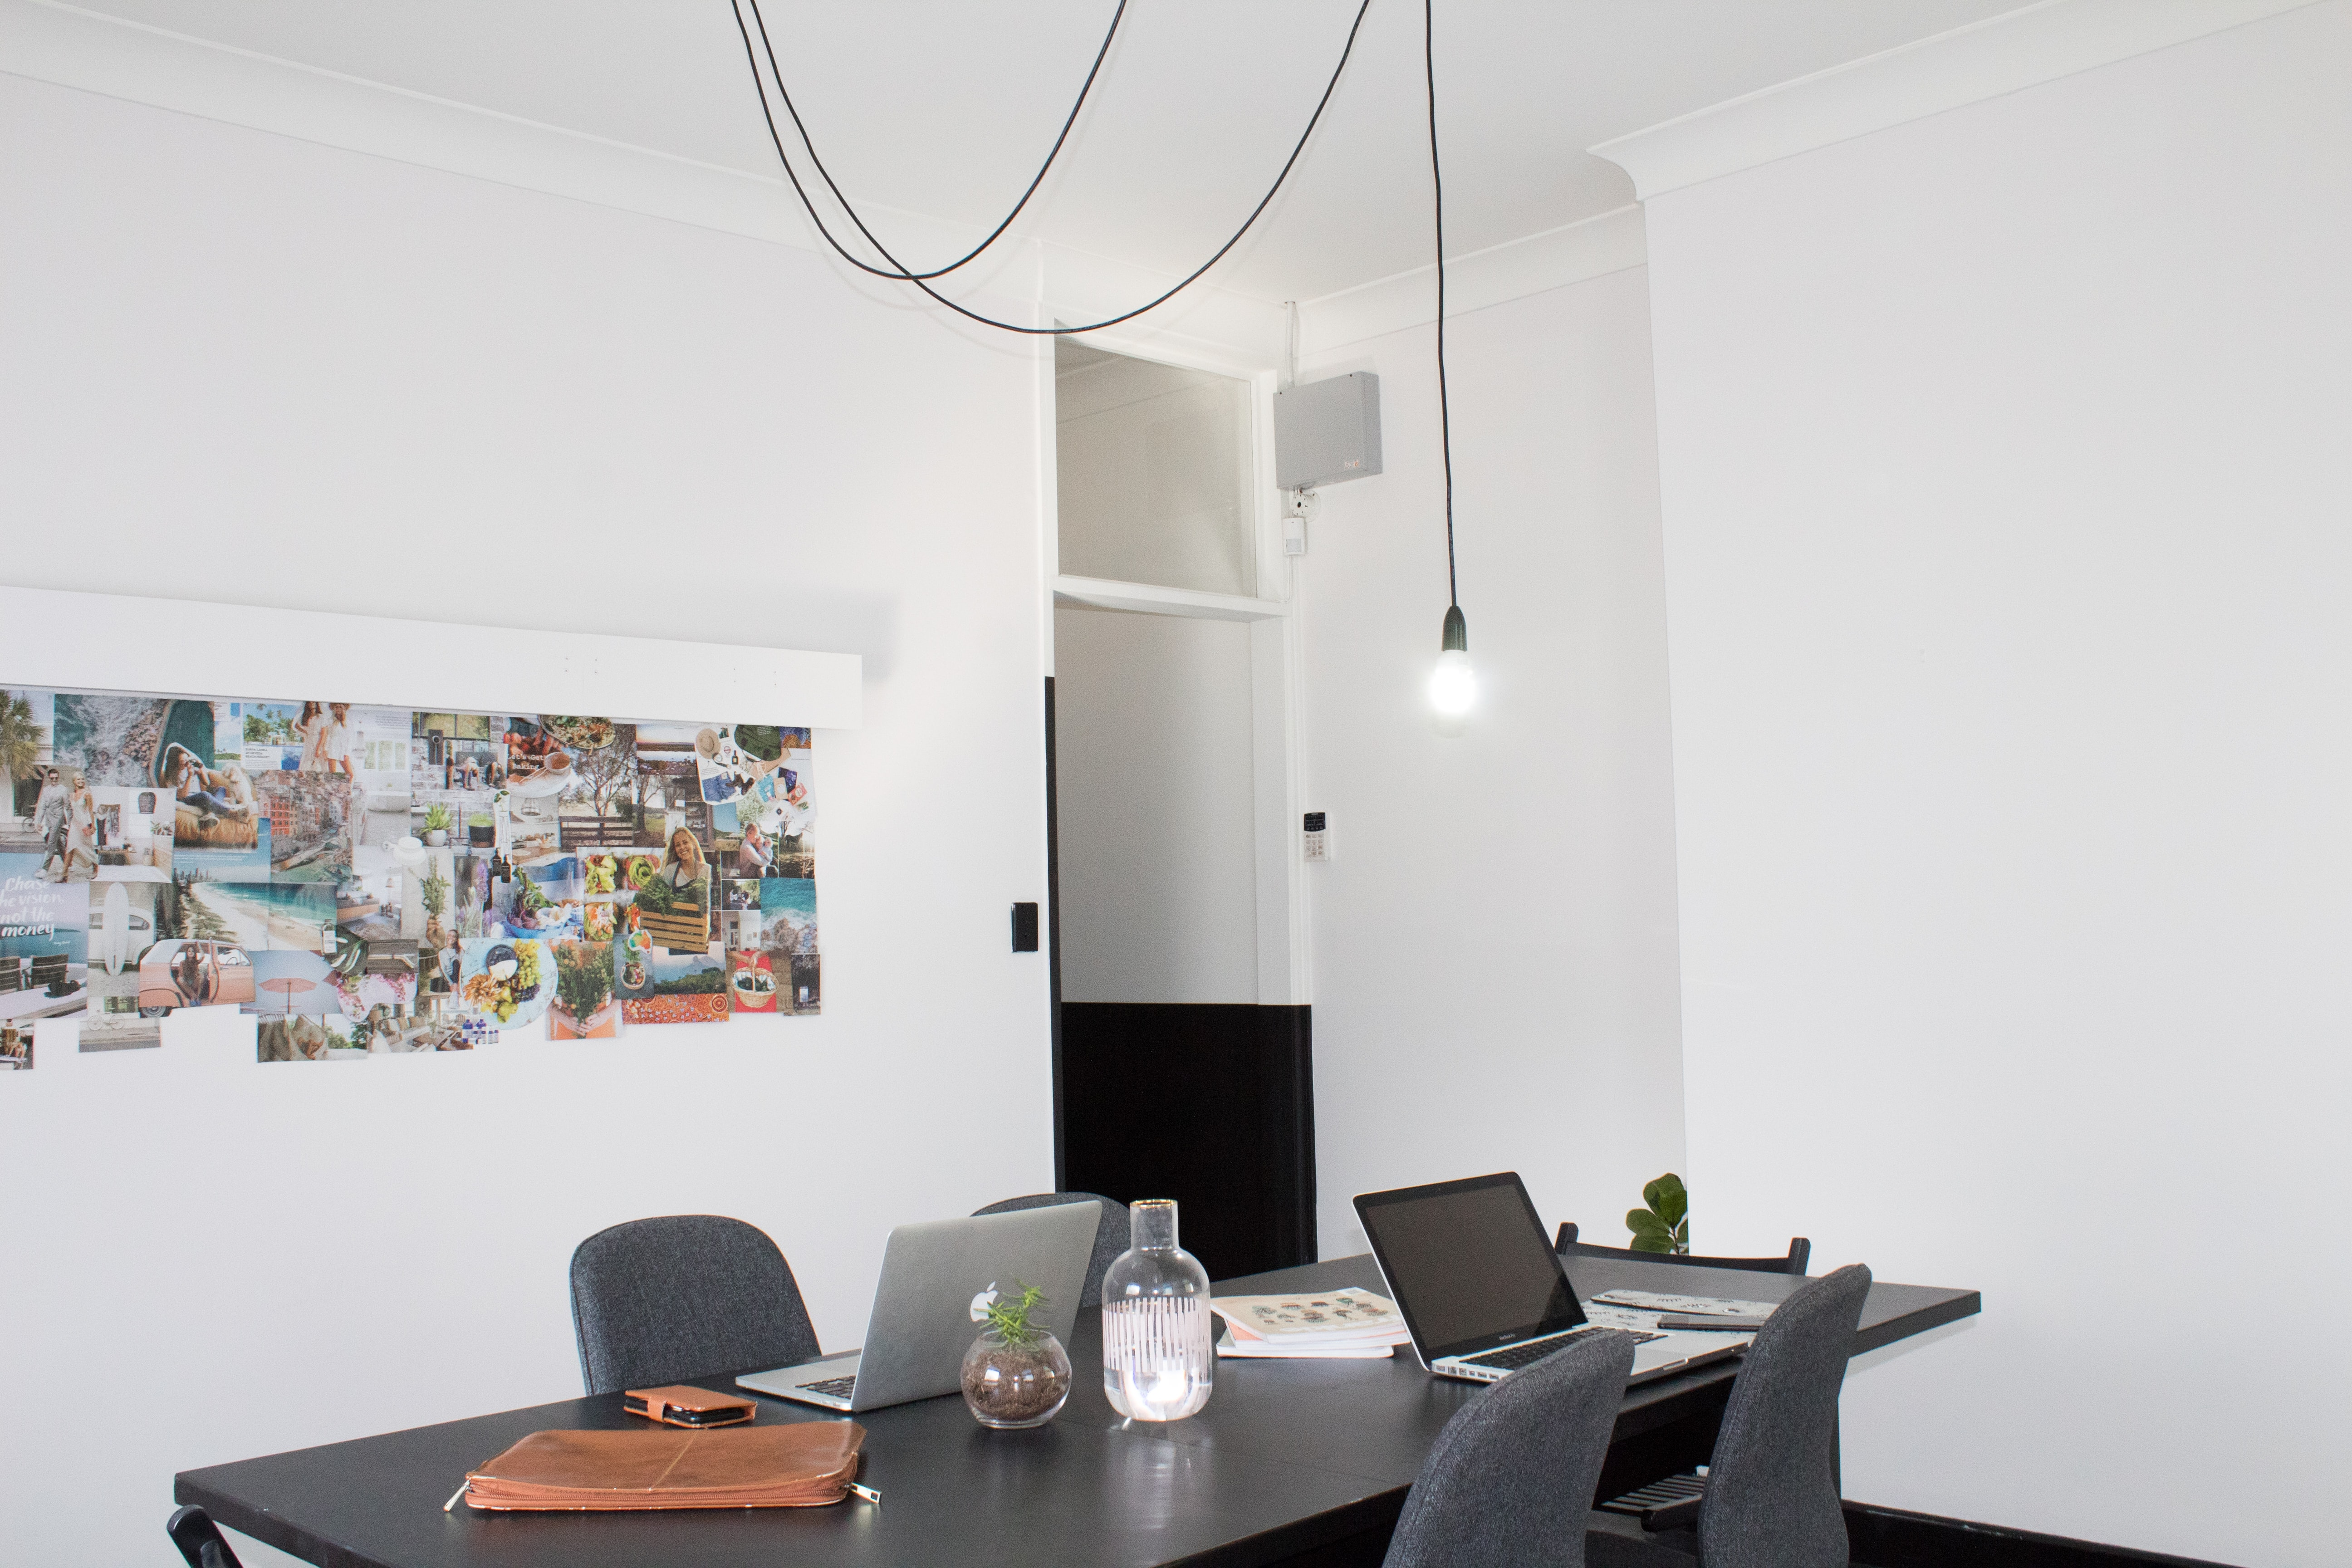 rectangular black wooden desk in white painted wall room